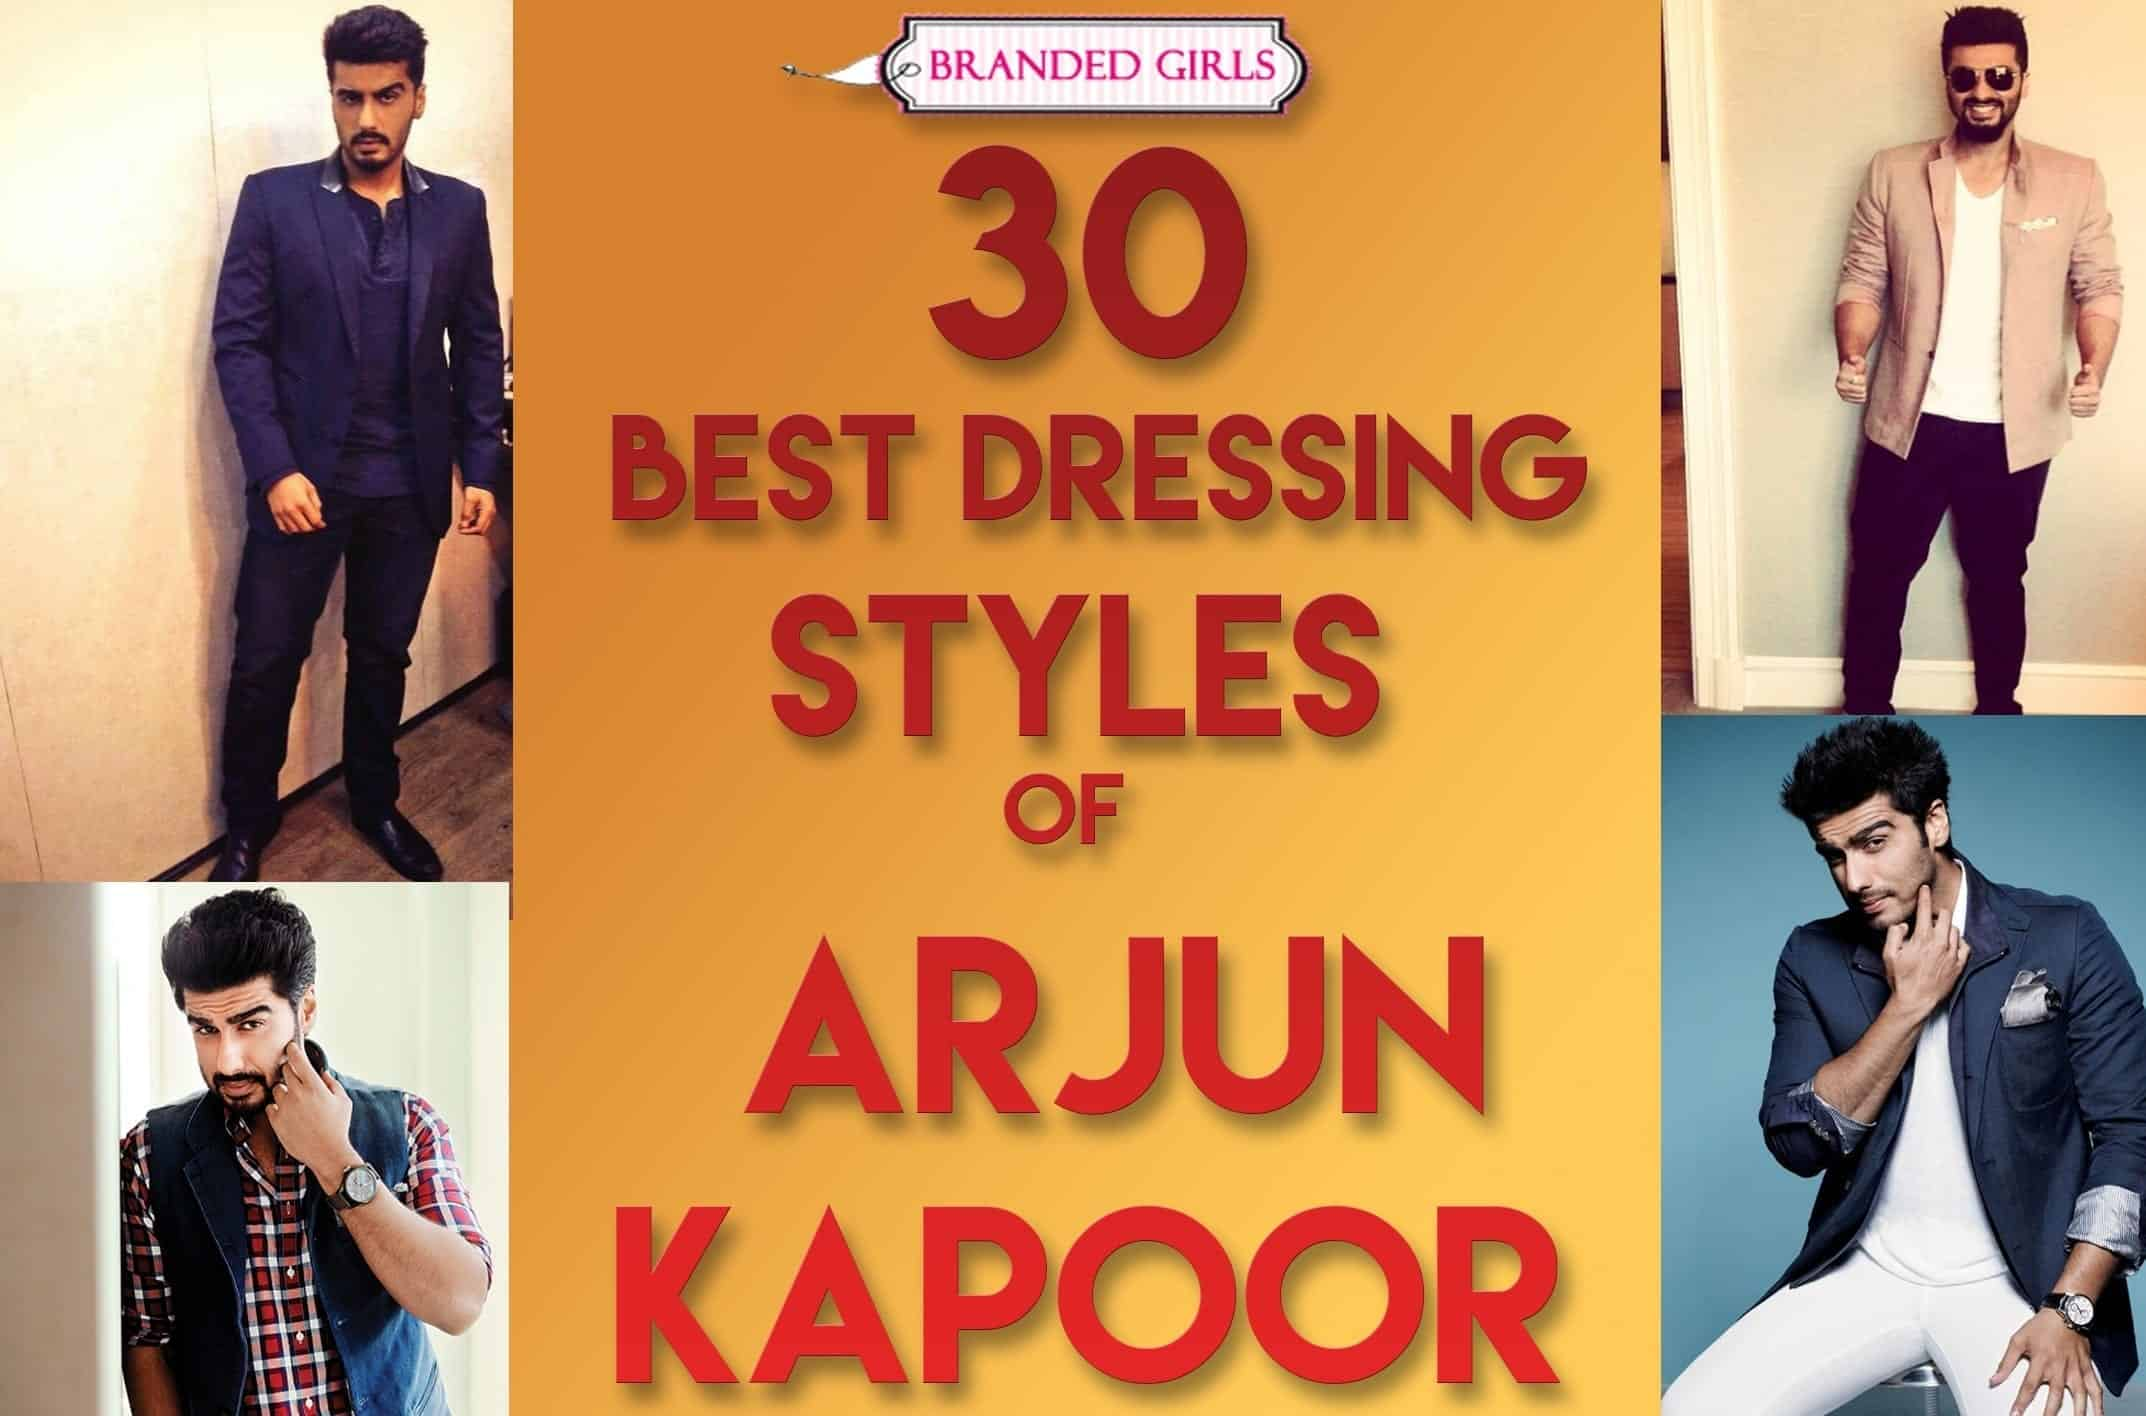 30 best dressing styles of arjun kapoor